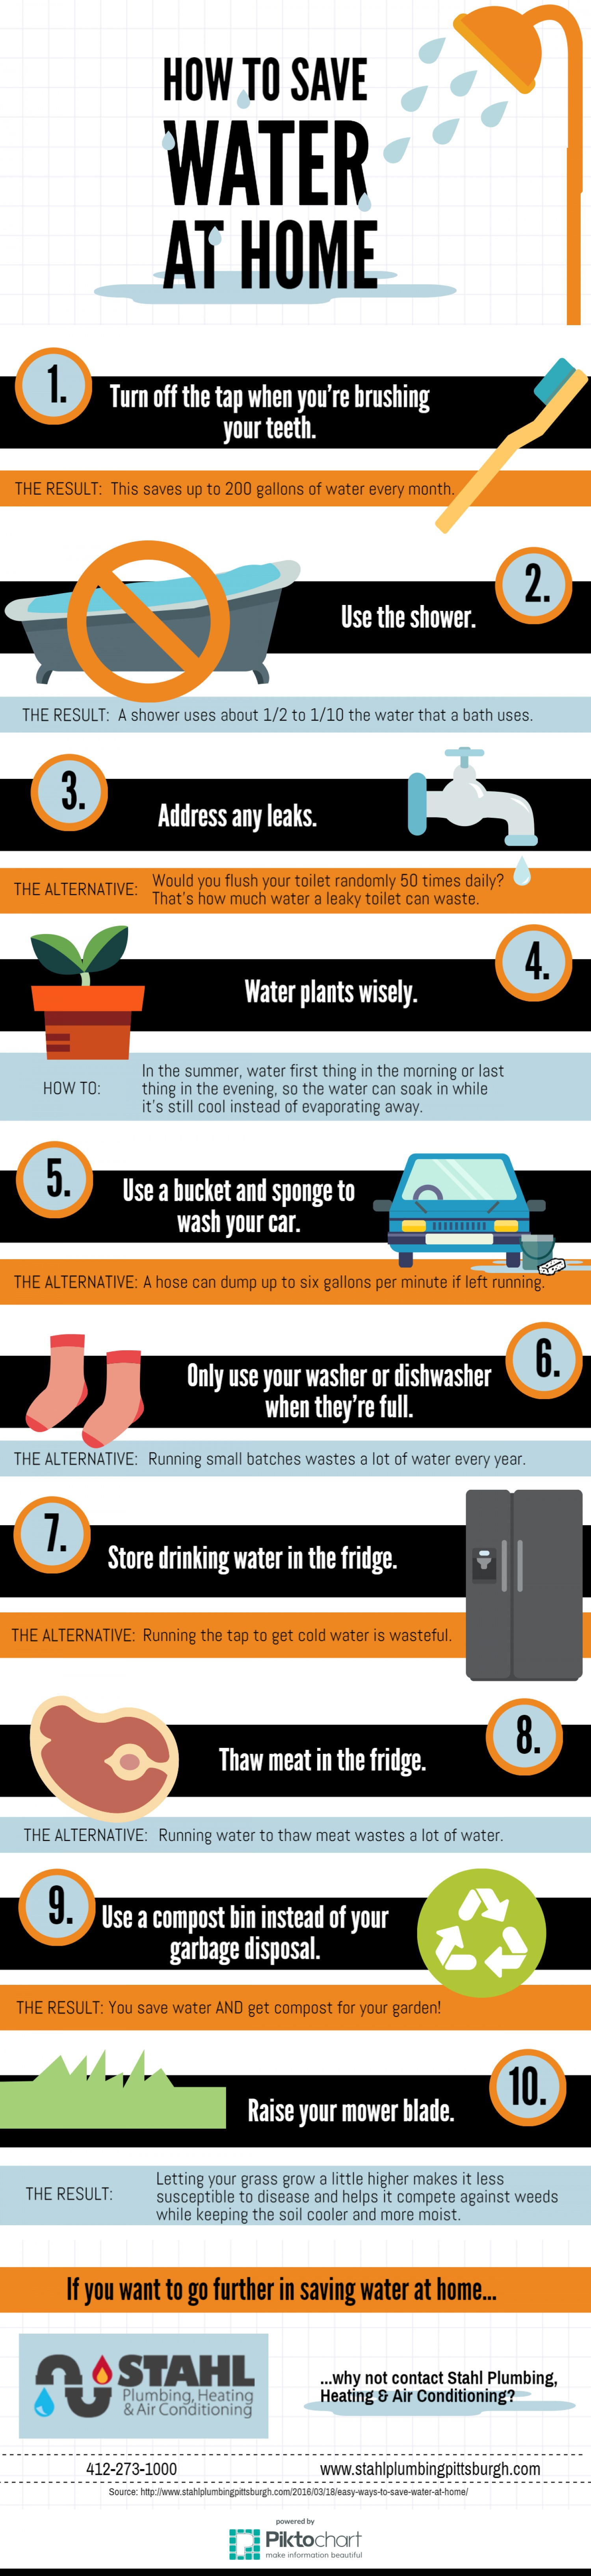 10 Ways To Save Water At Home [Infographic]